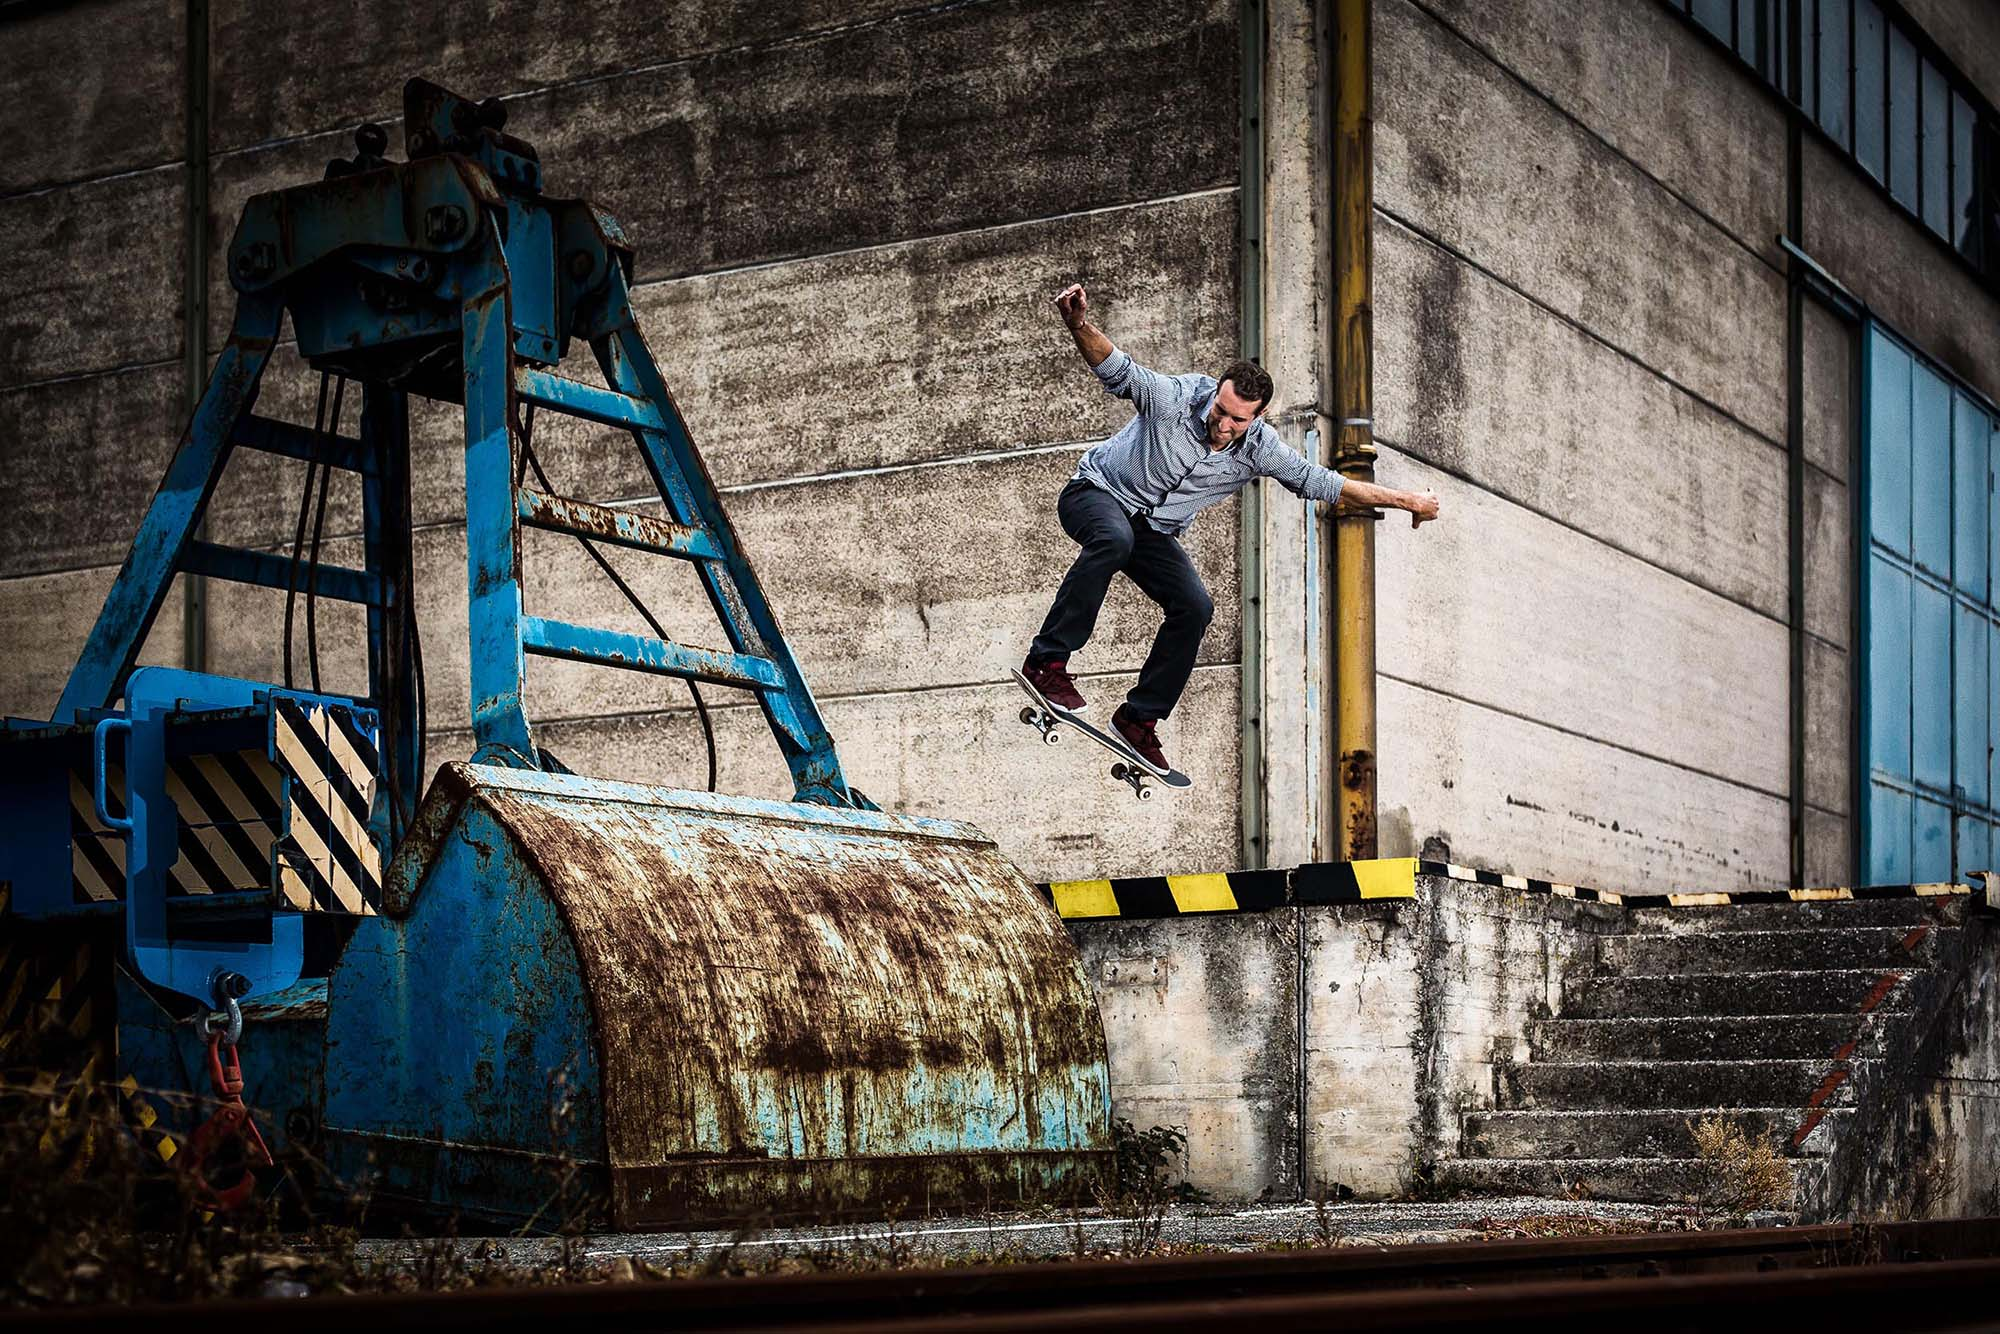 skateboarding skateing skateboard backside flip action sports photography sportfotografie flap photography fotograf philipp greindl photographer